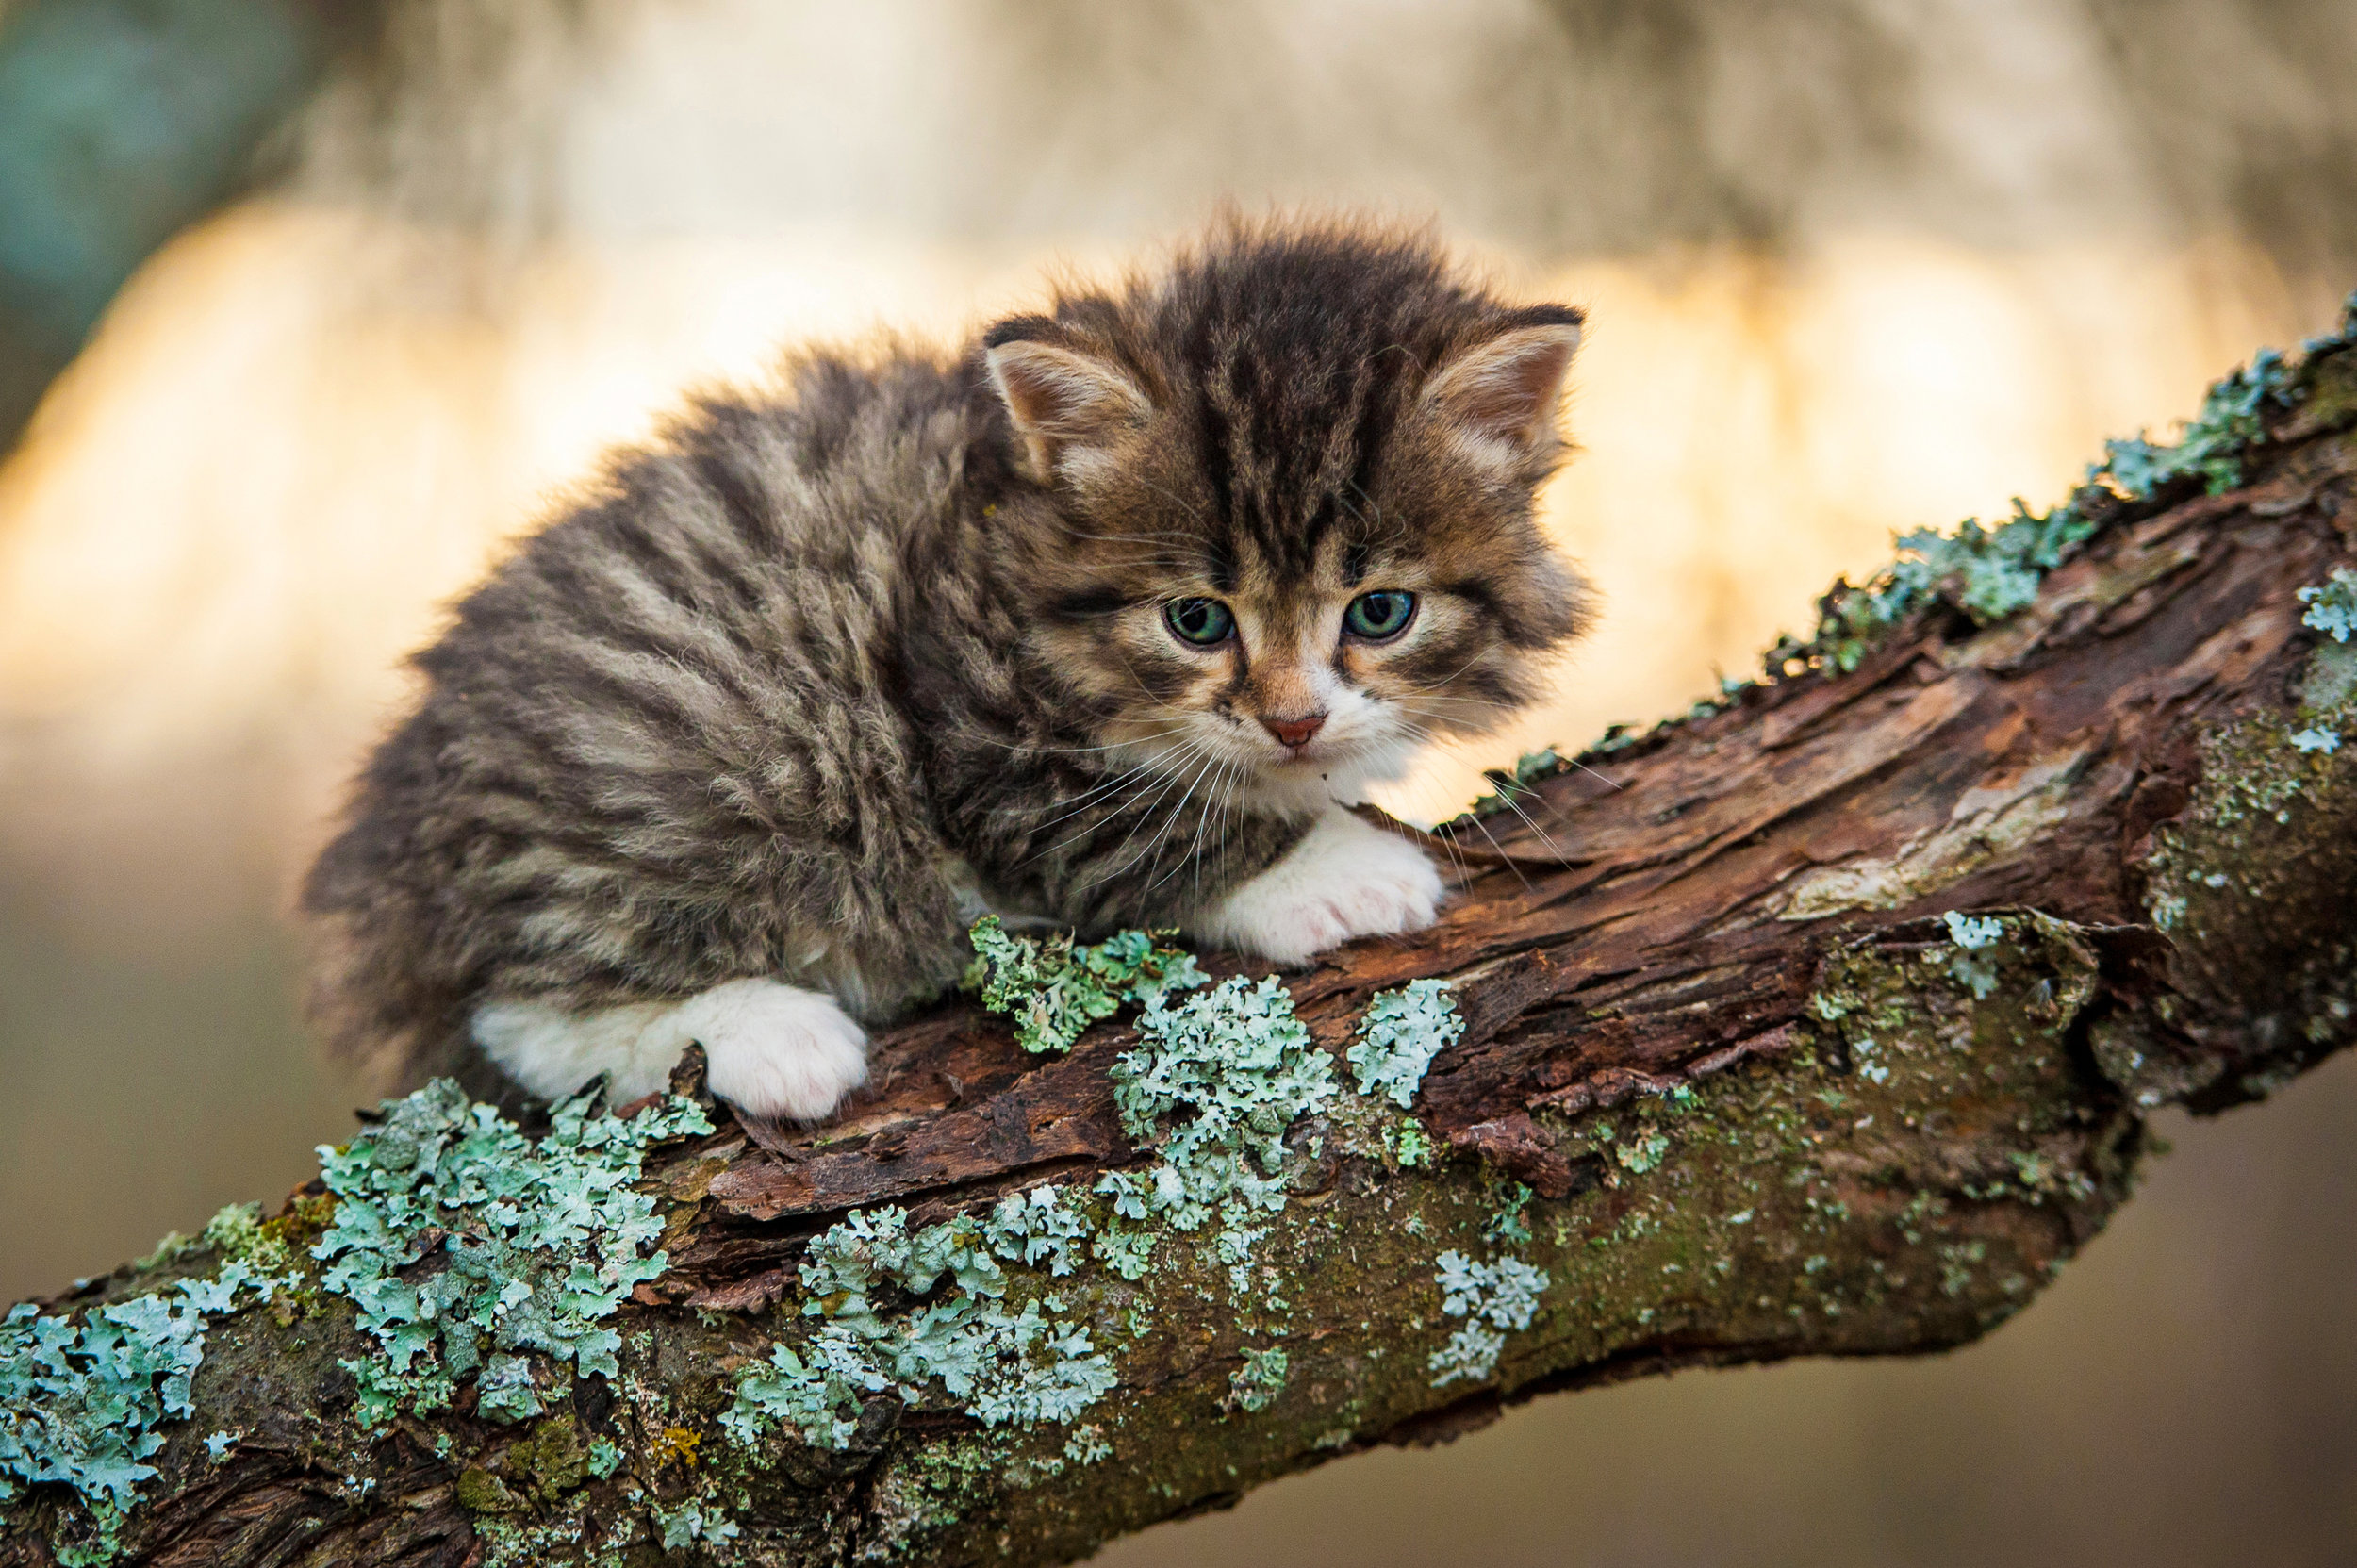 This cat looks like she's stuck in a tree… poor kitty.